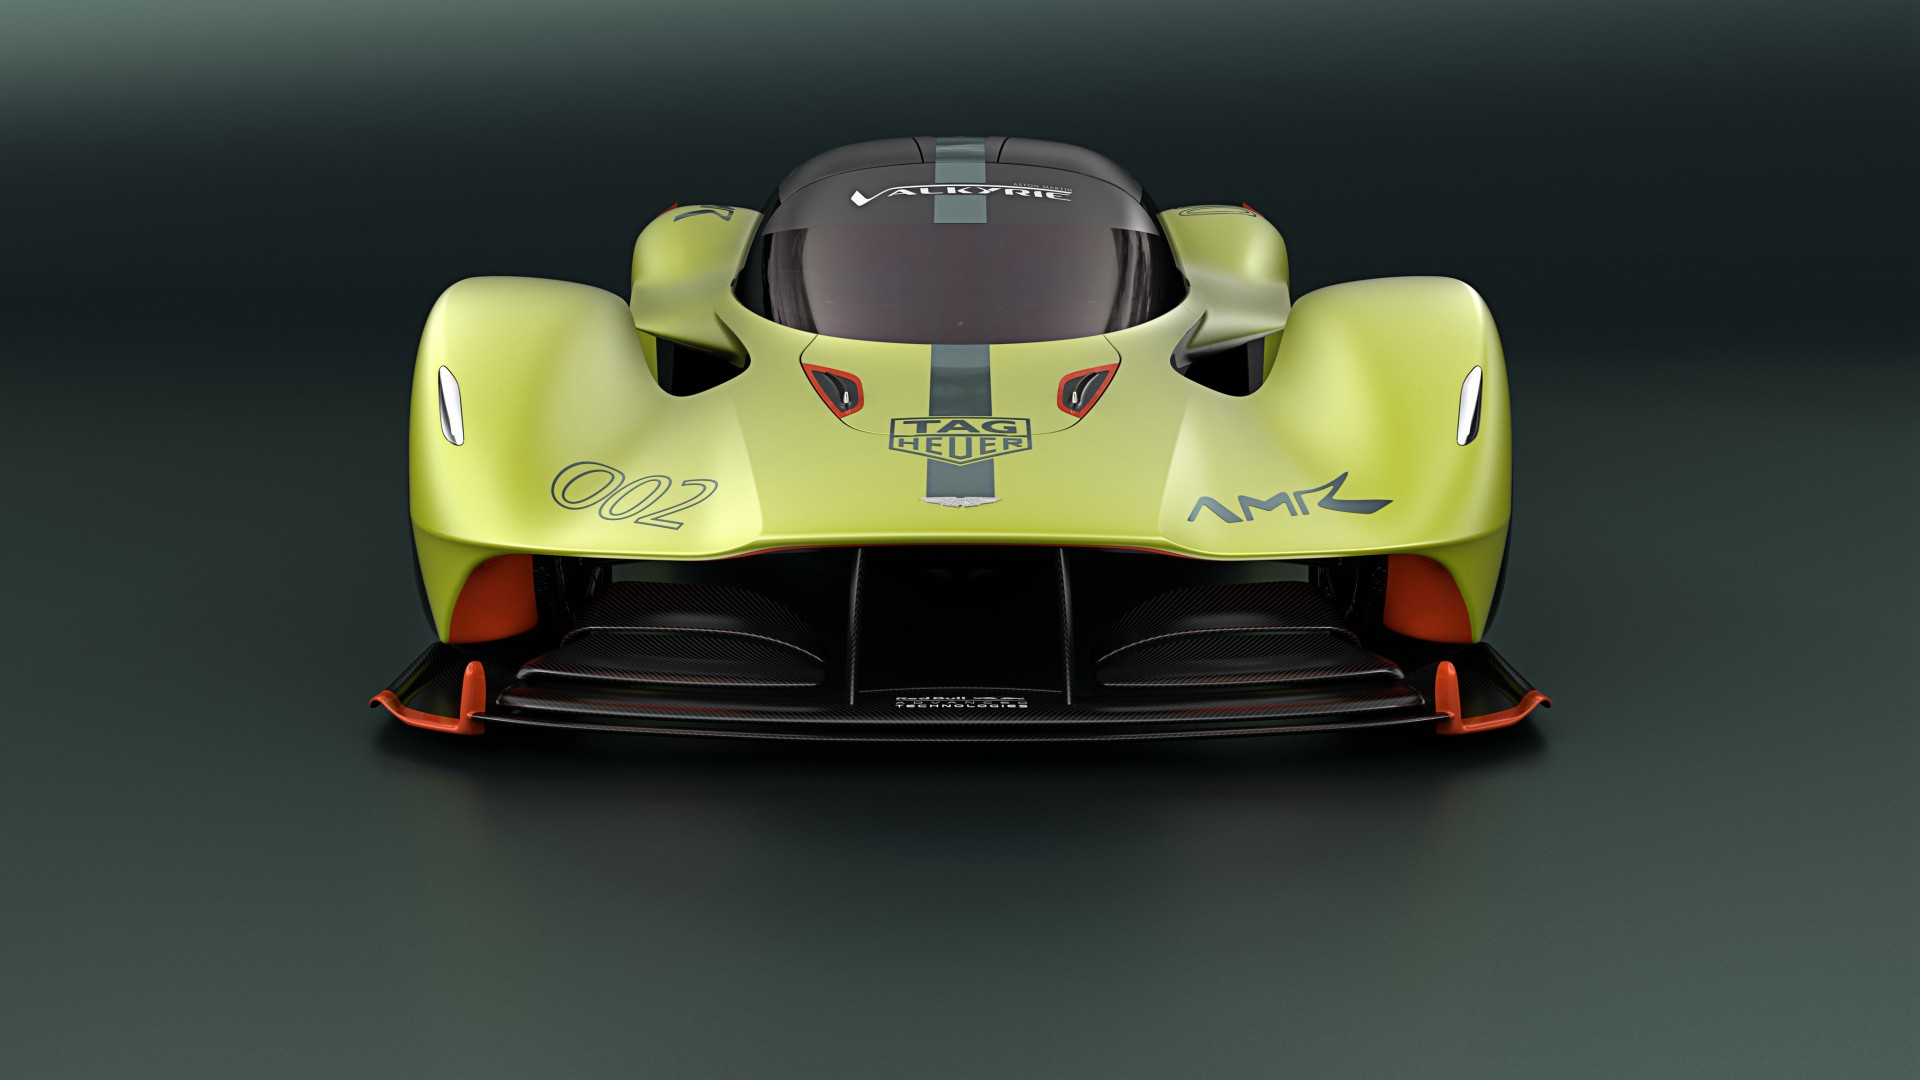 4k Wallpaper Car Lamborghini 2018 Aston Martin Valkyrie Amr Pro 4k 3 Wallpaper Hd Car